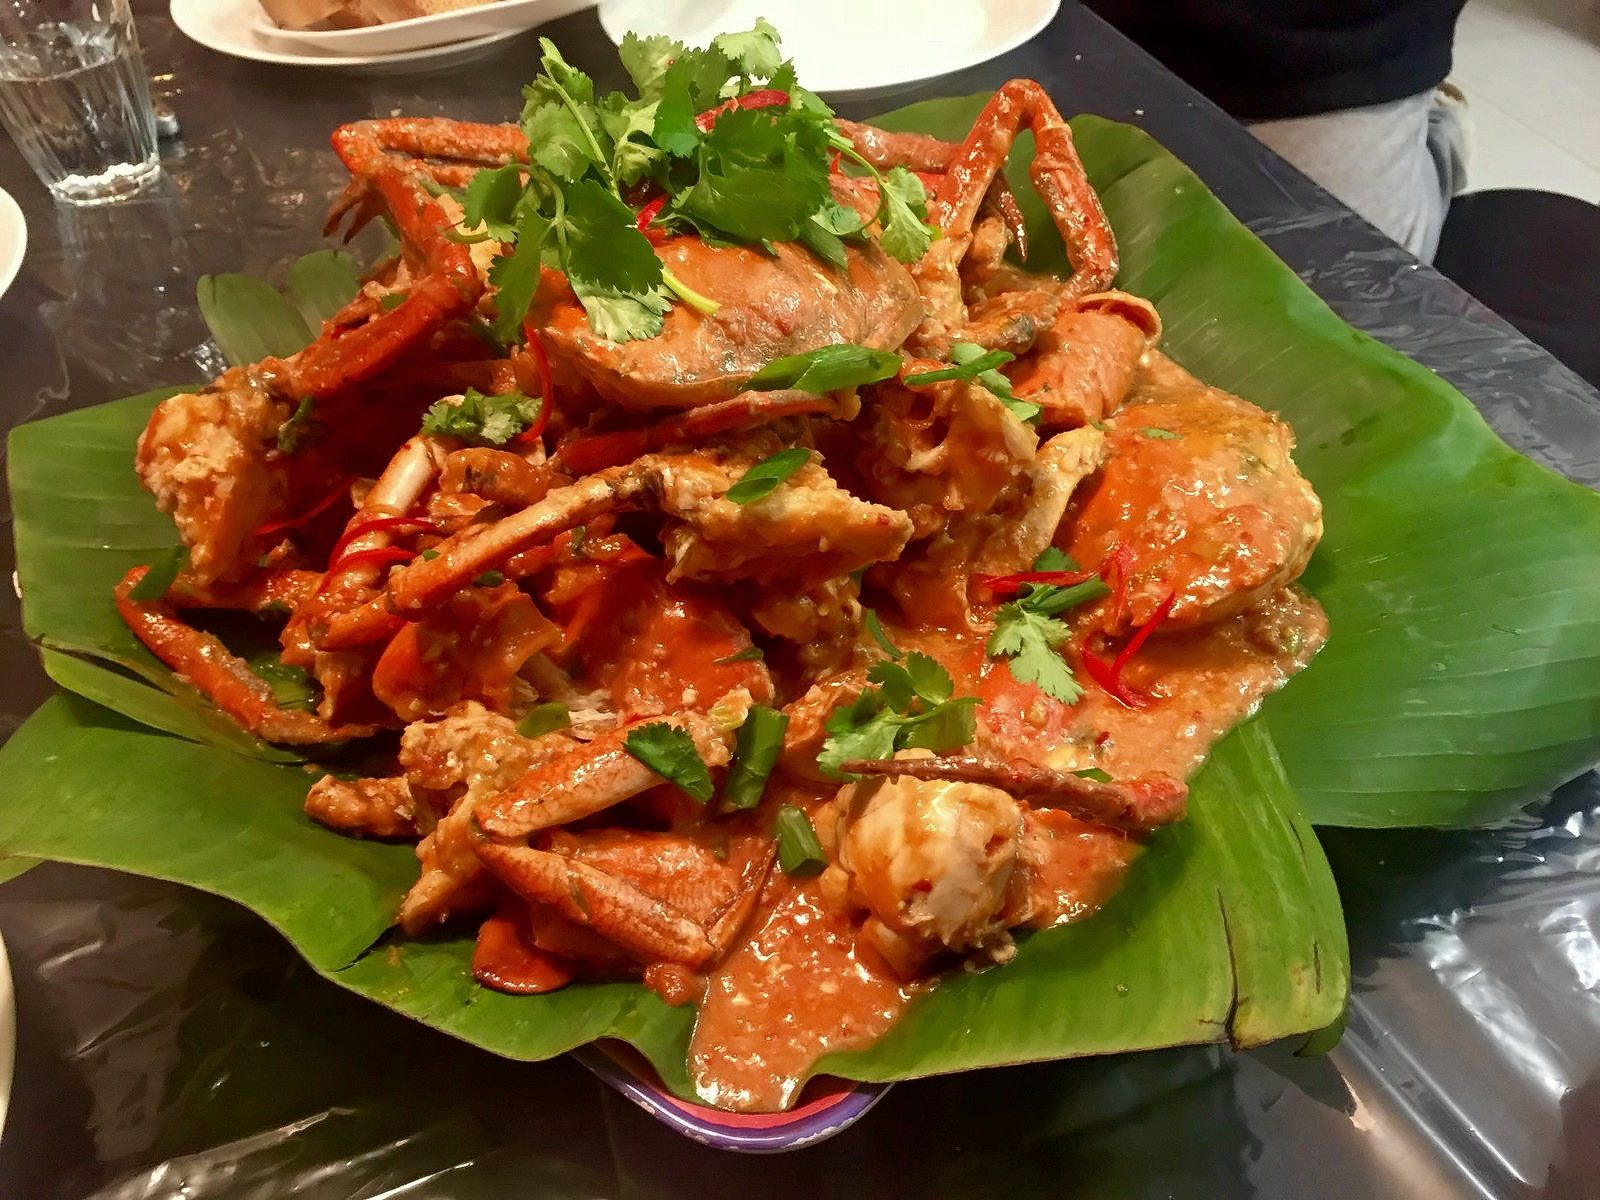 Singapore Chilli Mud Crab by Trent Moreland